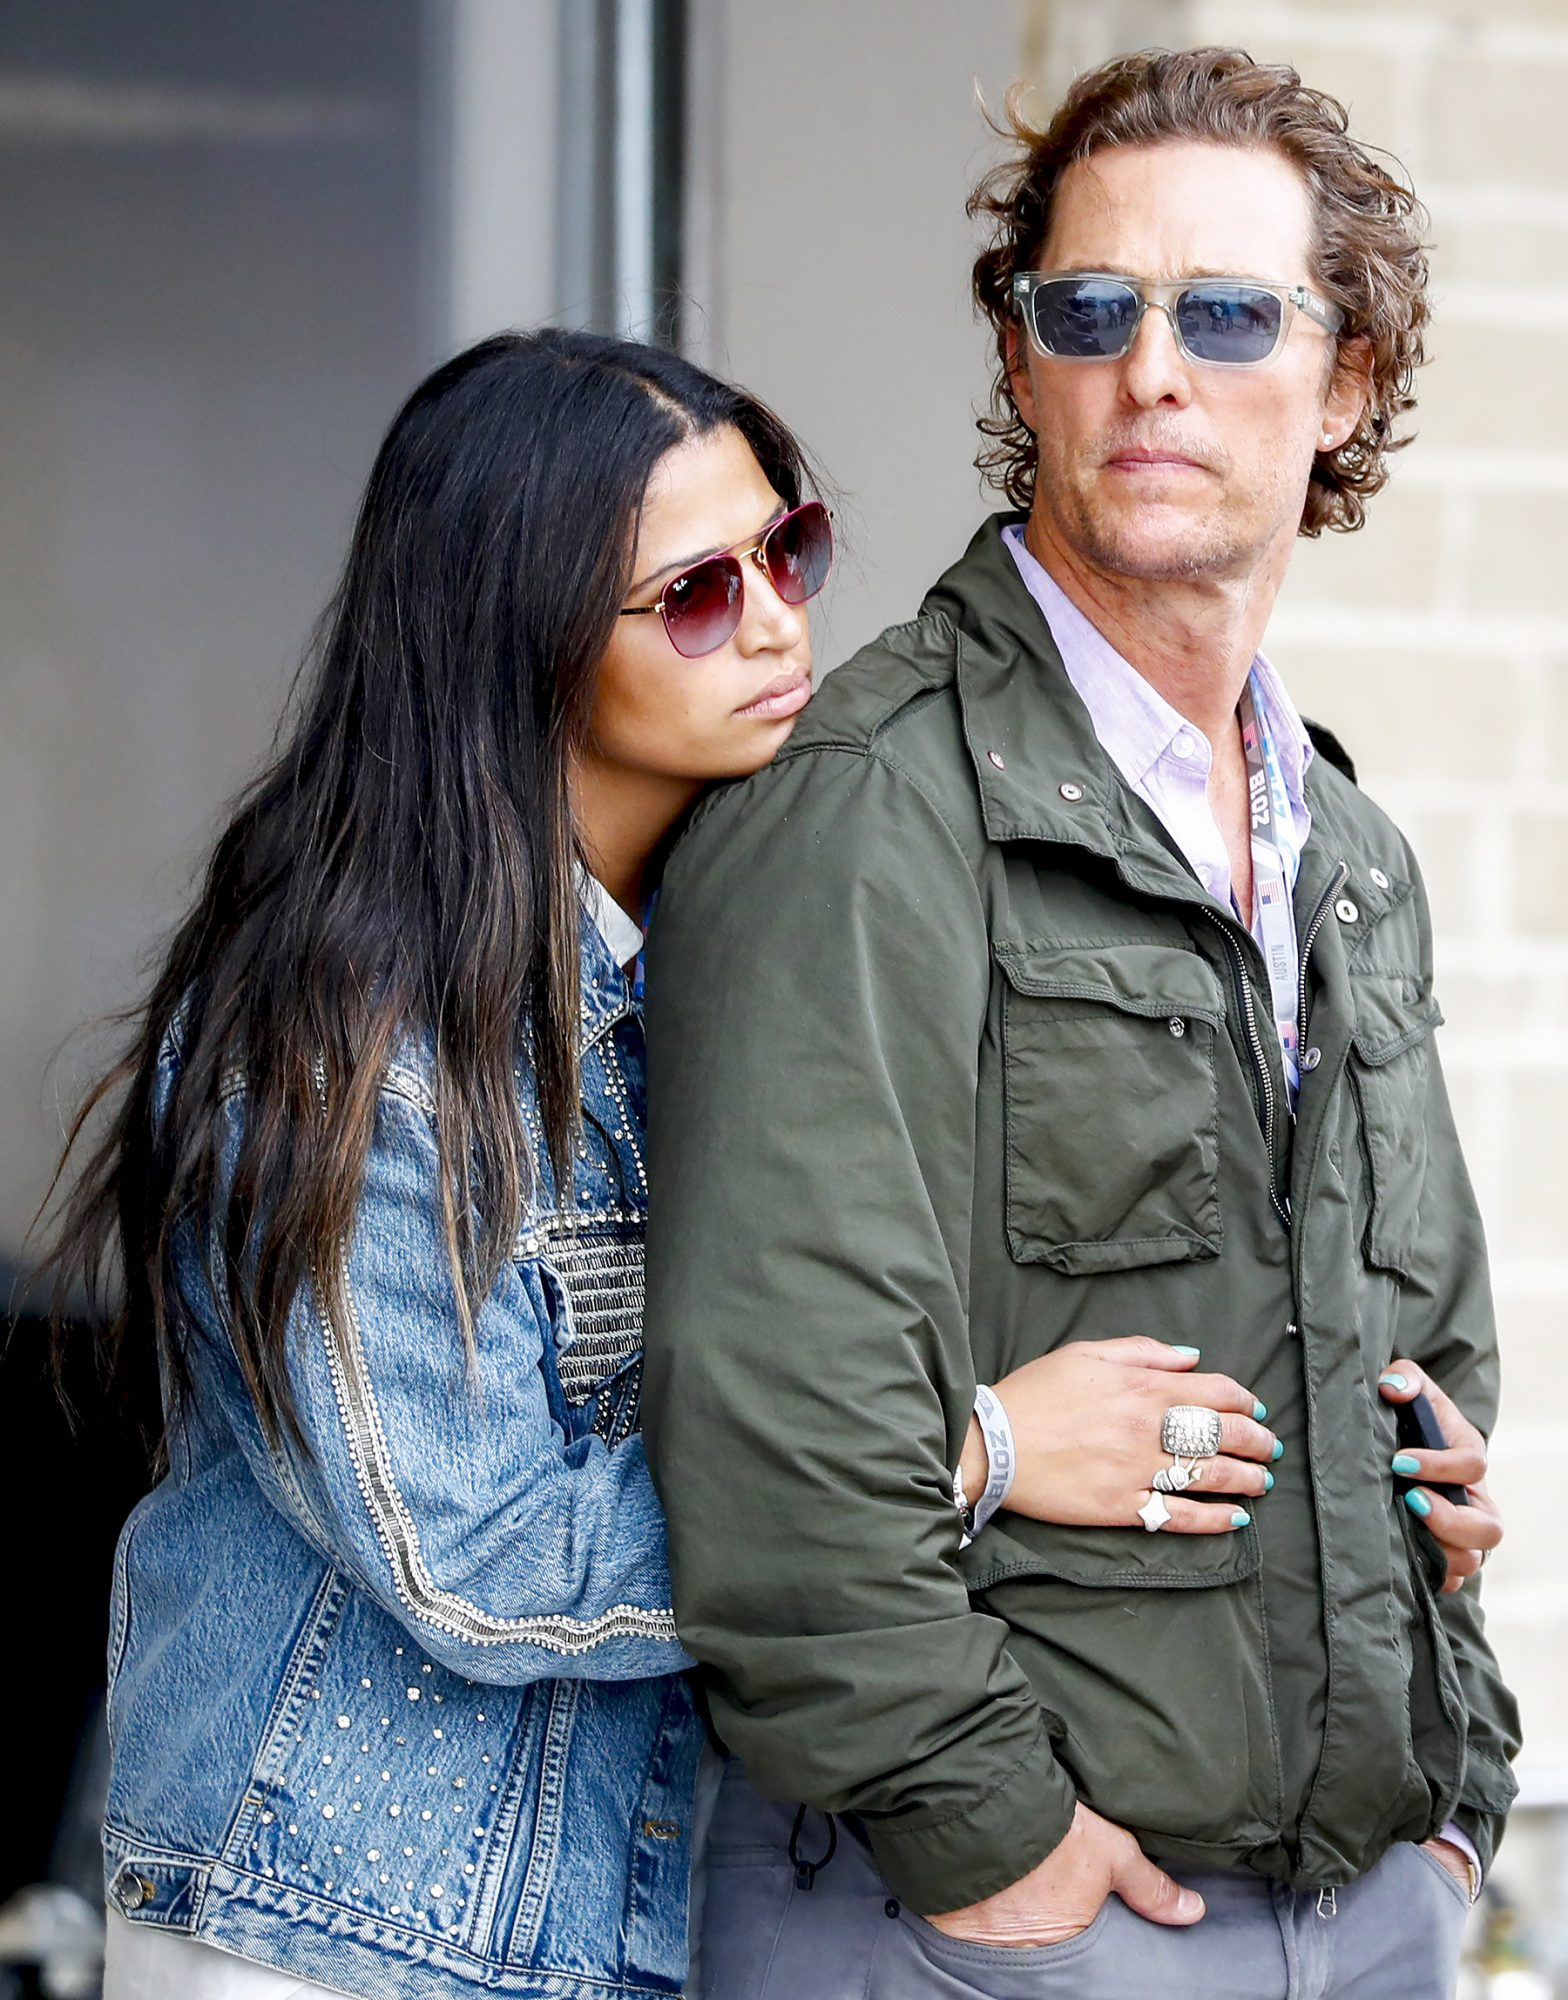 Matthew McConaughey and wife Camila Alves attend Grand Prix of United States in Austin